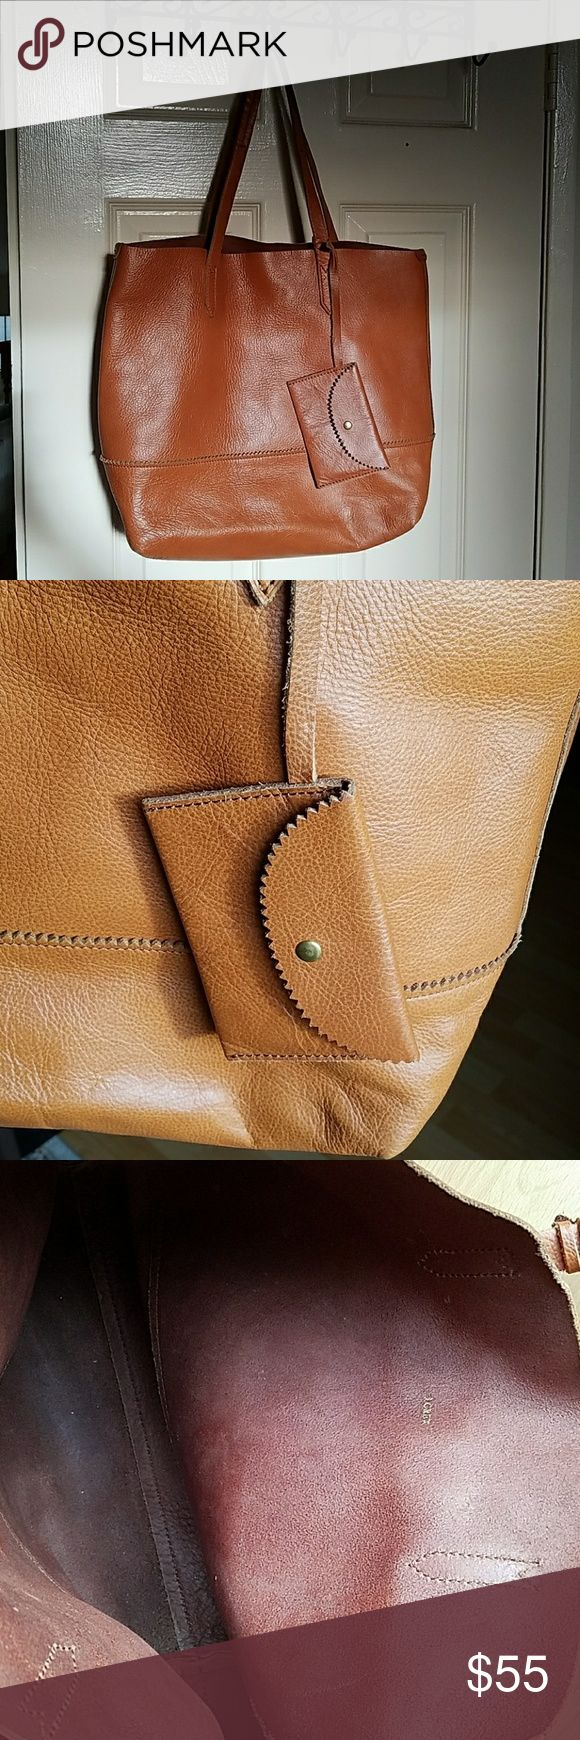 """Jcrew genuine leather tote bag VGUC chestnut brown leather tote. Comes with removable card holder. A few scuffs, as noted in pictures. One of the straps has some rippling of the leather. One large main compartment. Lots of life left!  Measures 13""""x6""""x13"""" with 9"""" strap drop. J. Crew Bags Totes"""